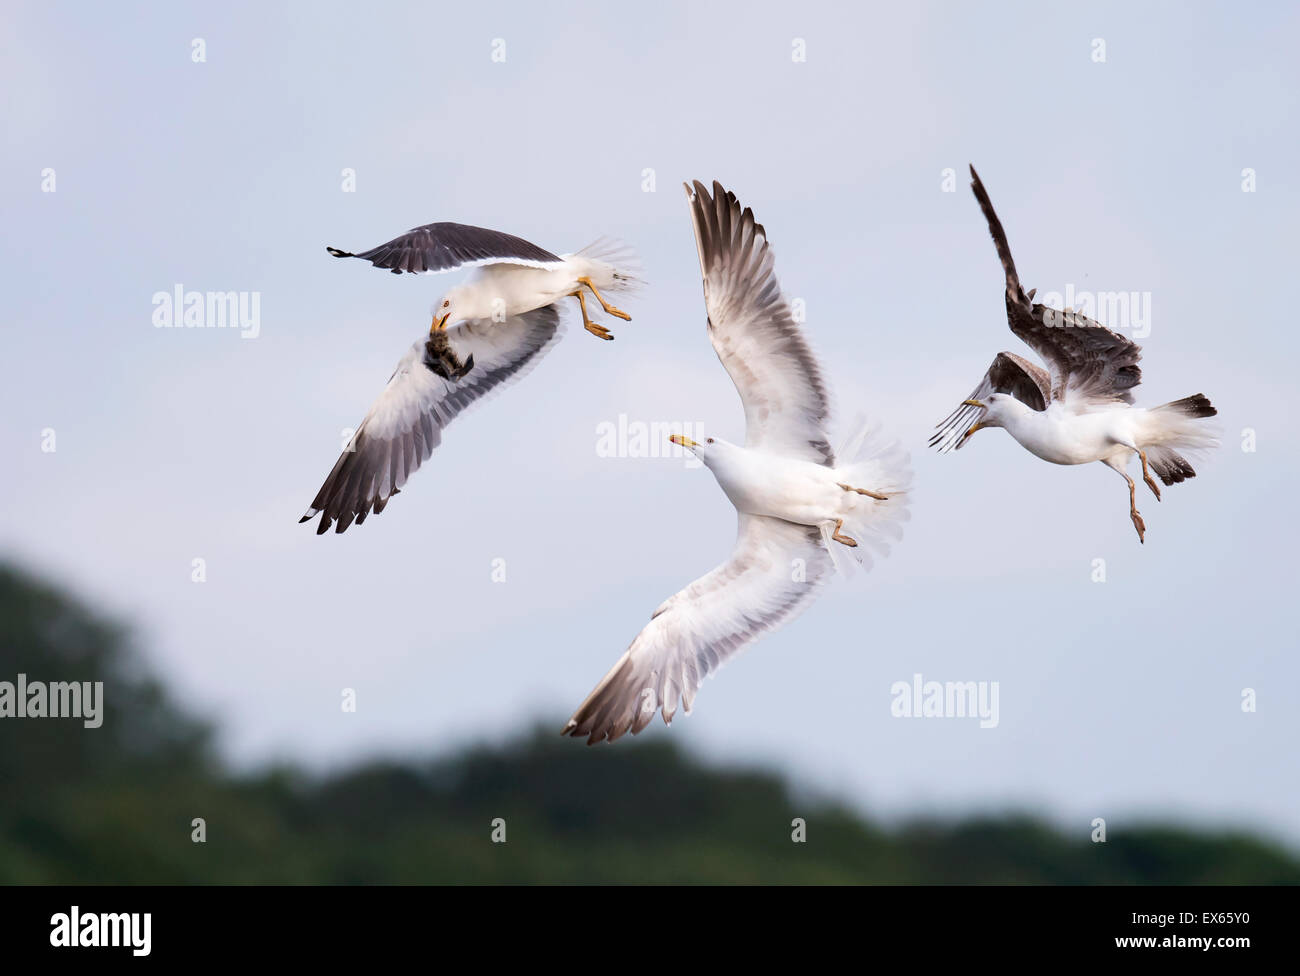 Lesser Blacked backed gull (Larus fuscus) pursued by it's youngsters after grabbing a hapless chick - Stock Image